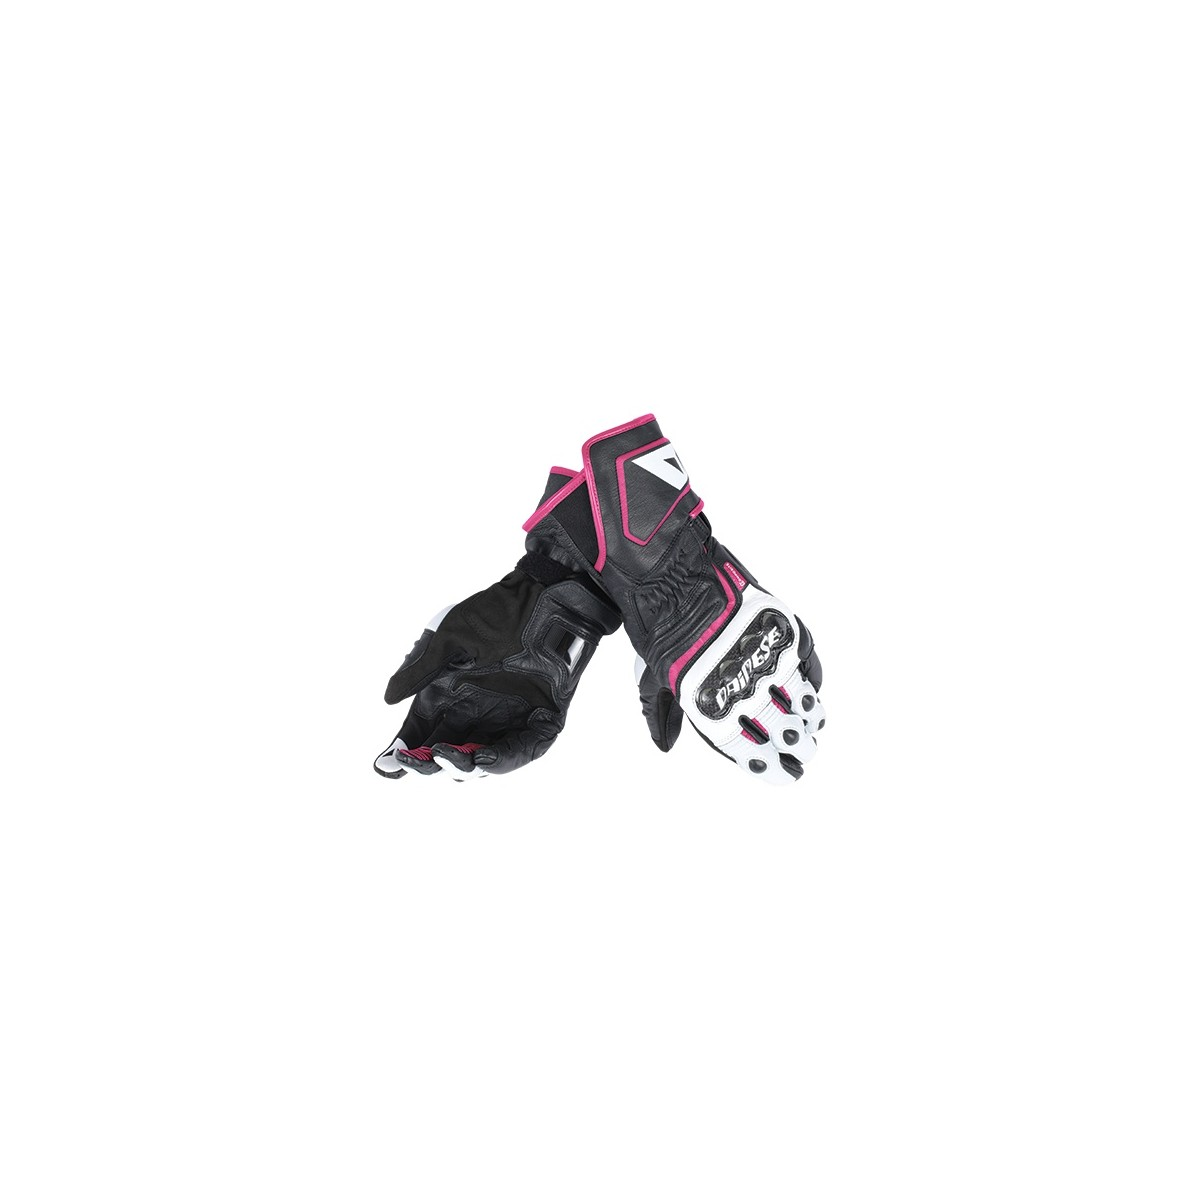 1ea8032a Guantes Dainese Carbon D1 Long Lady negro/blanco/fuxia, compra online